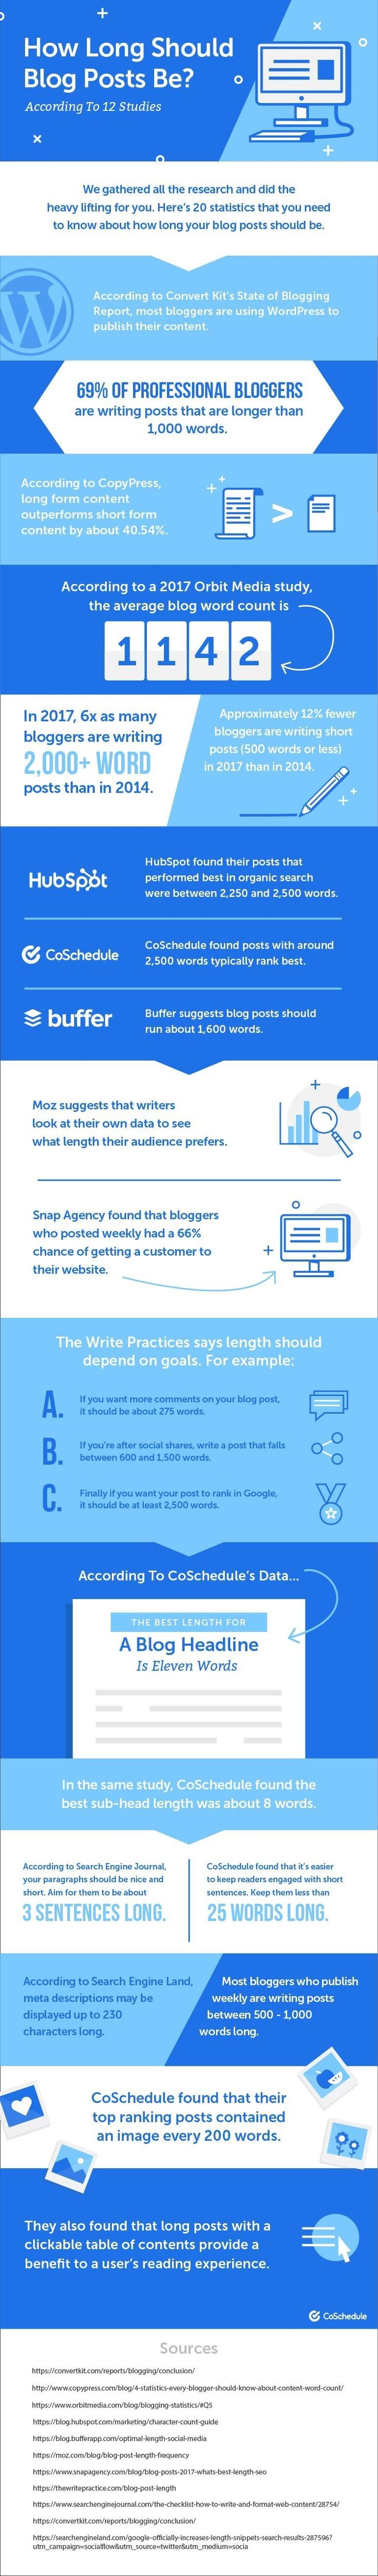 How Long Should a Blog Post Be to Get the Most Traffic and Shares? - #infographic